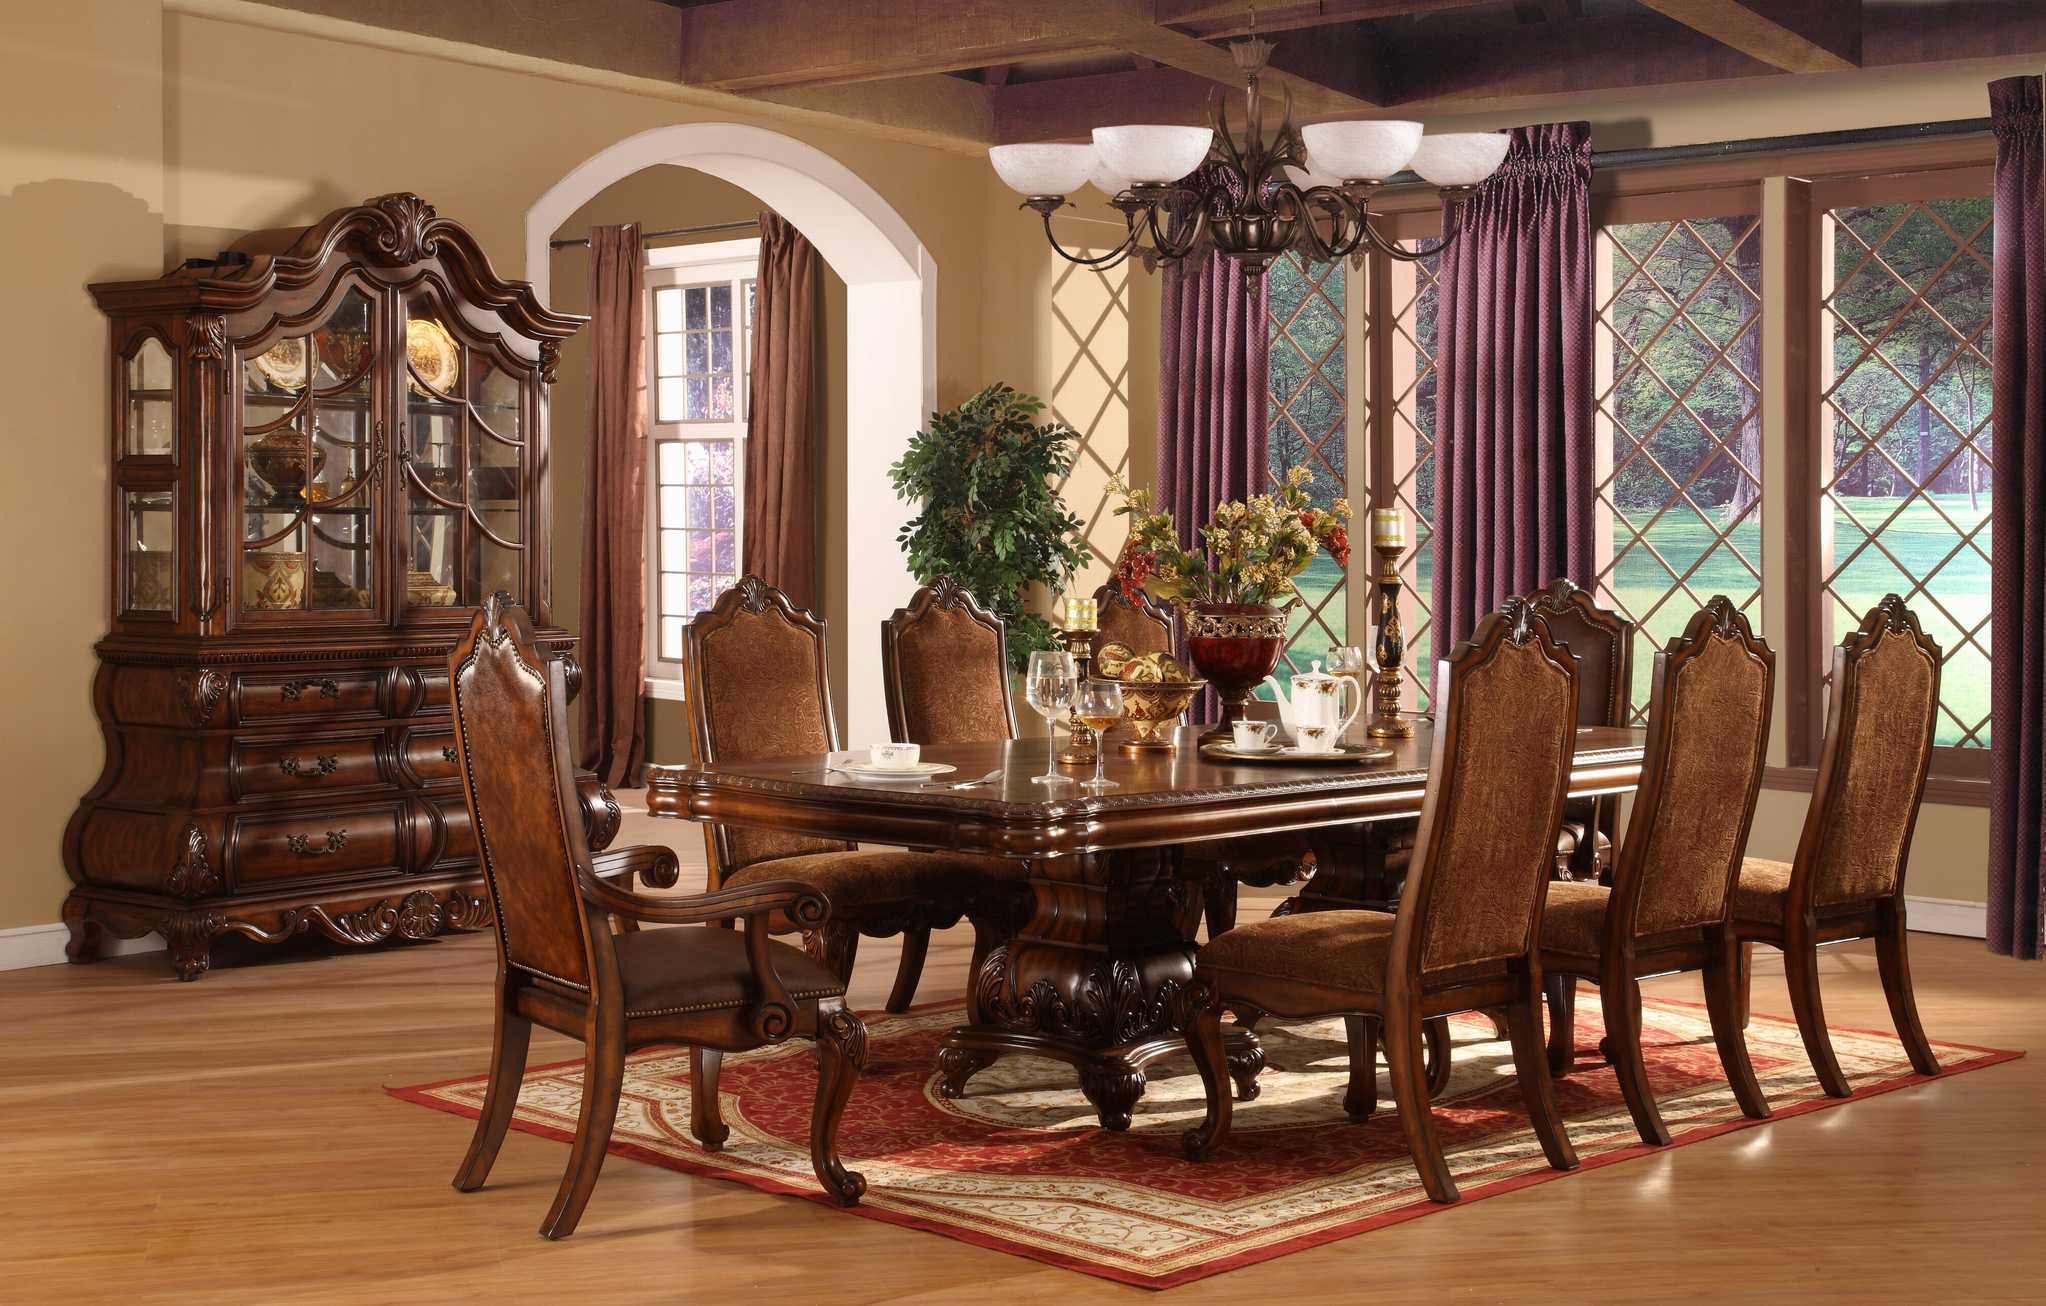 fancy dining room chairs best rocking chair for nursing perfect formal sets 8 homesfeed